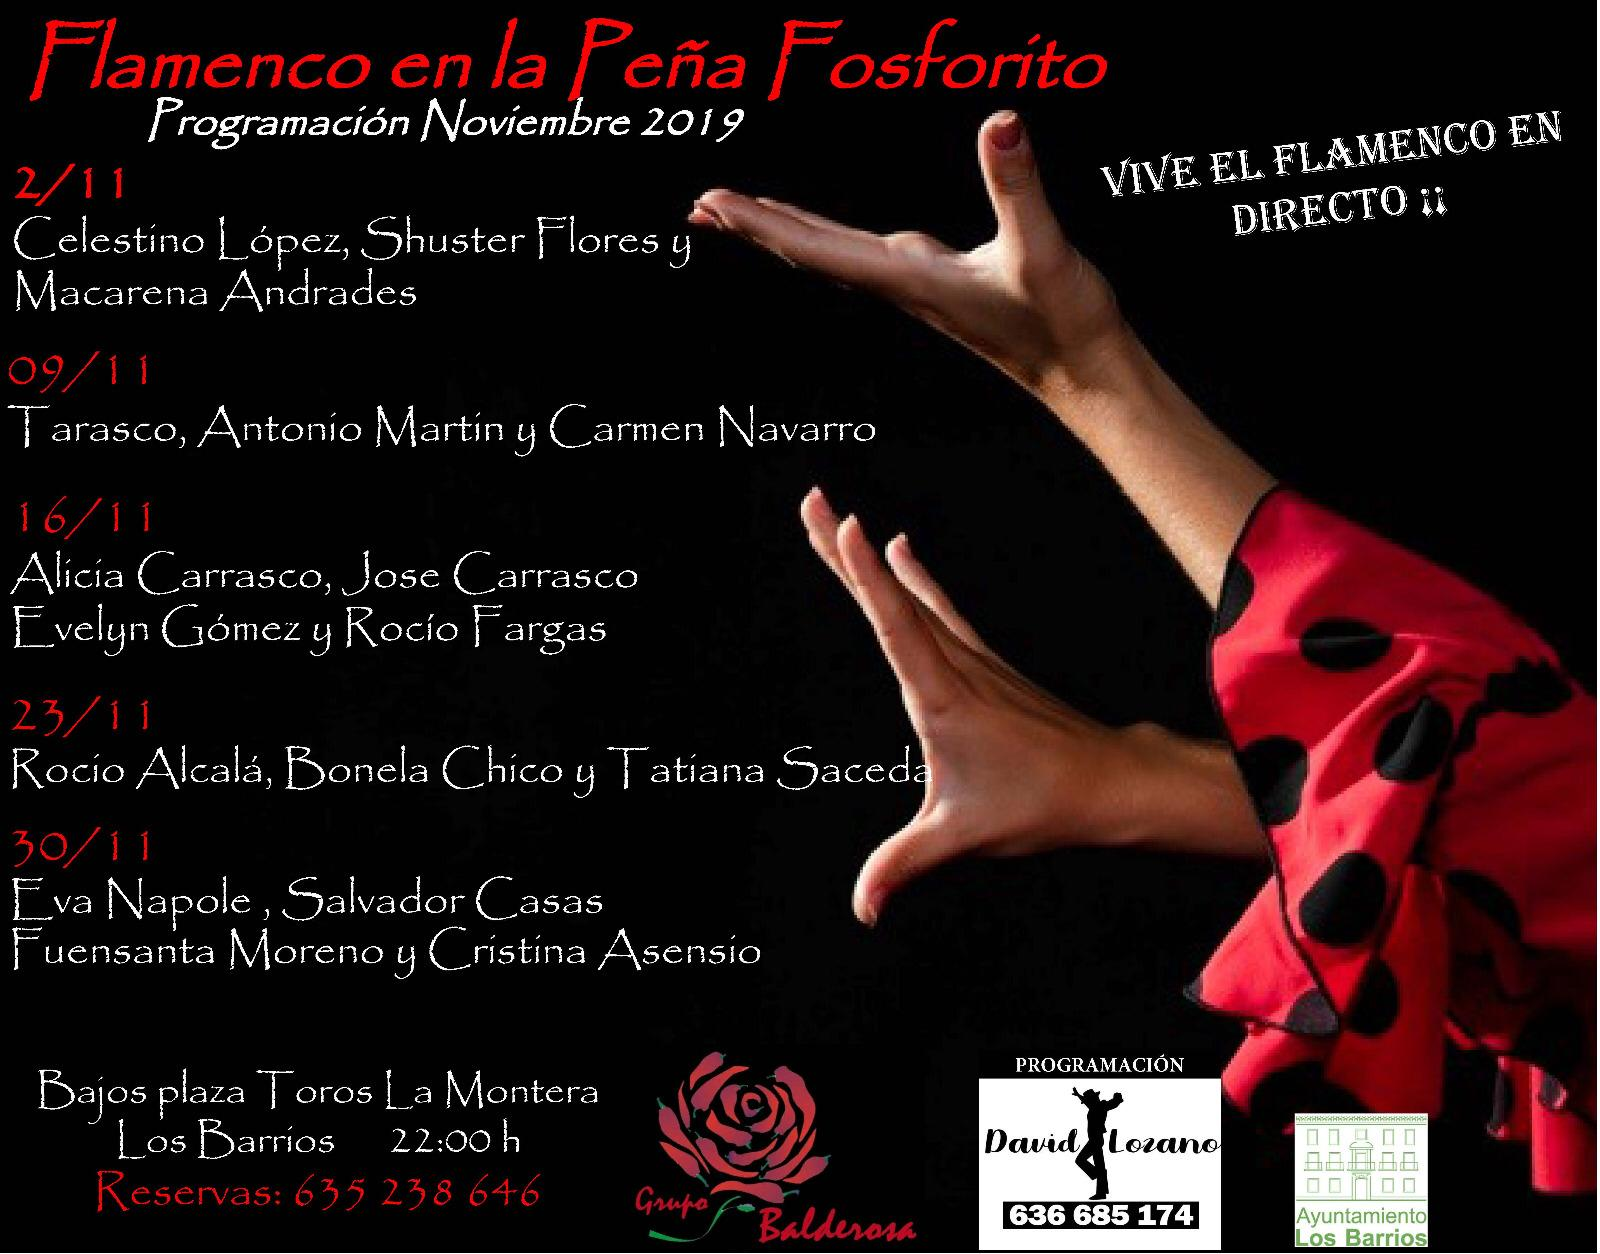 sites/default/files/2019_AGENDA/flamenco/Cartel Vivel el flamenco en directo Noviembre 2019.jpg